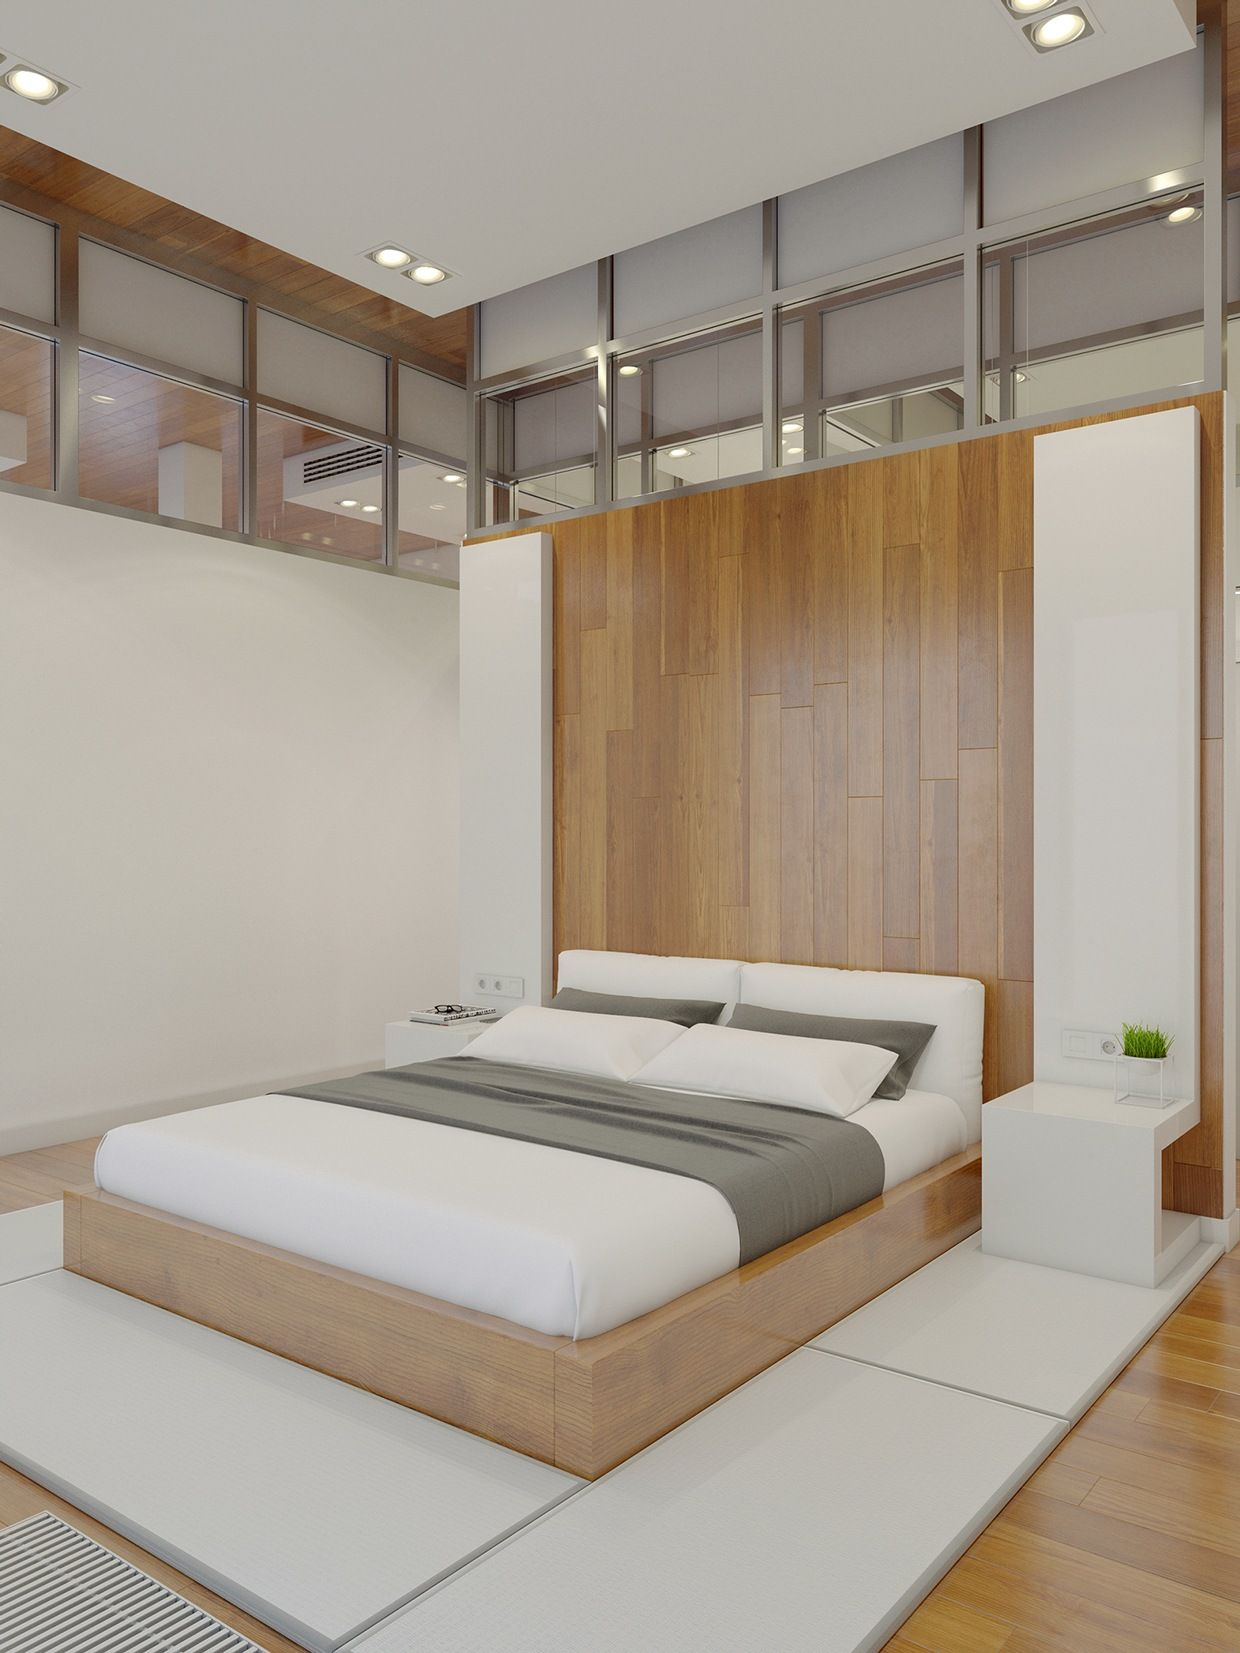 In the bedroom, white and gray are still pervasive. The low platform ...